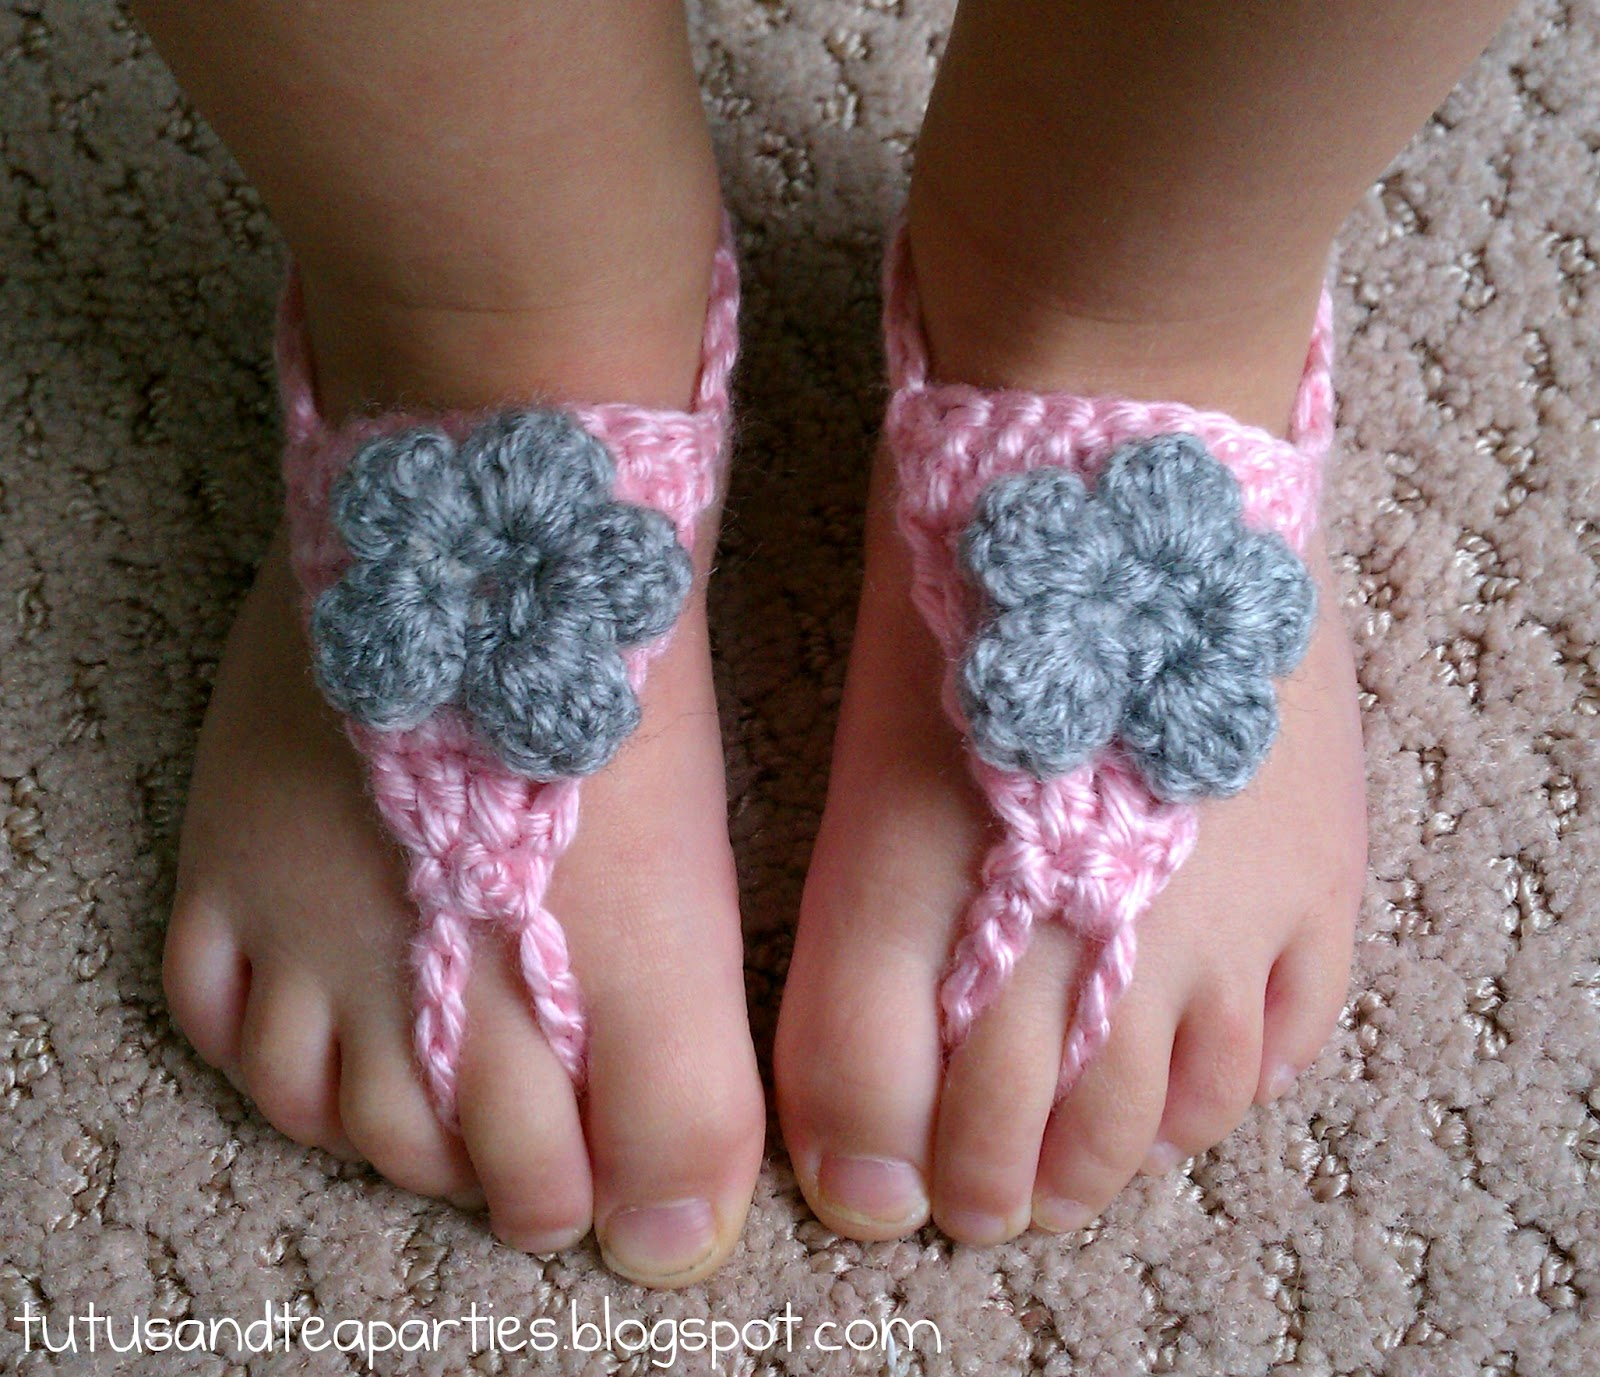 Crochet Pattern For Baby Barefoot Sandals : barefoot sandals crochet pattern free crochet baby sandals ...